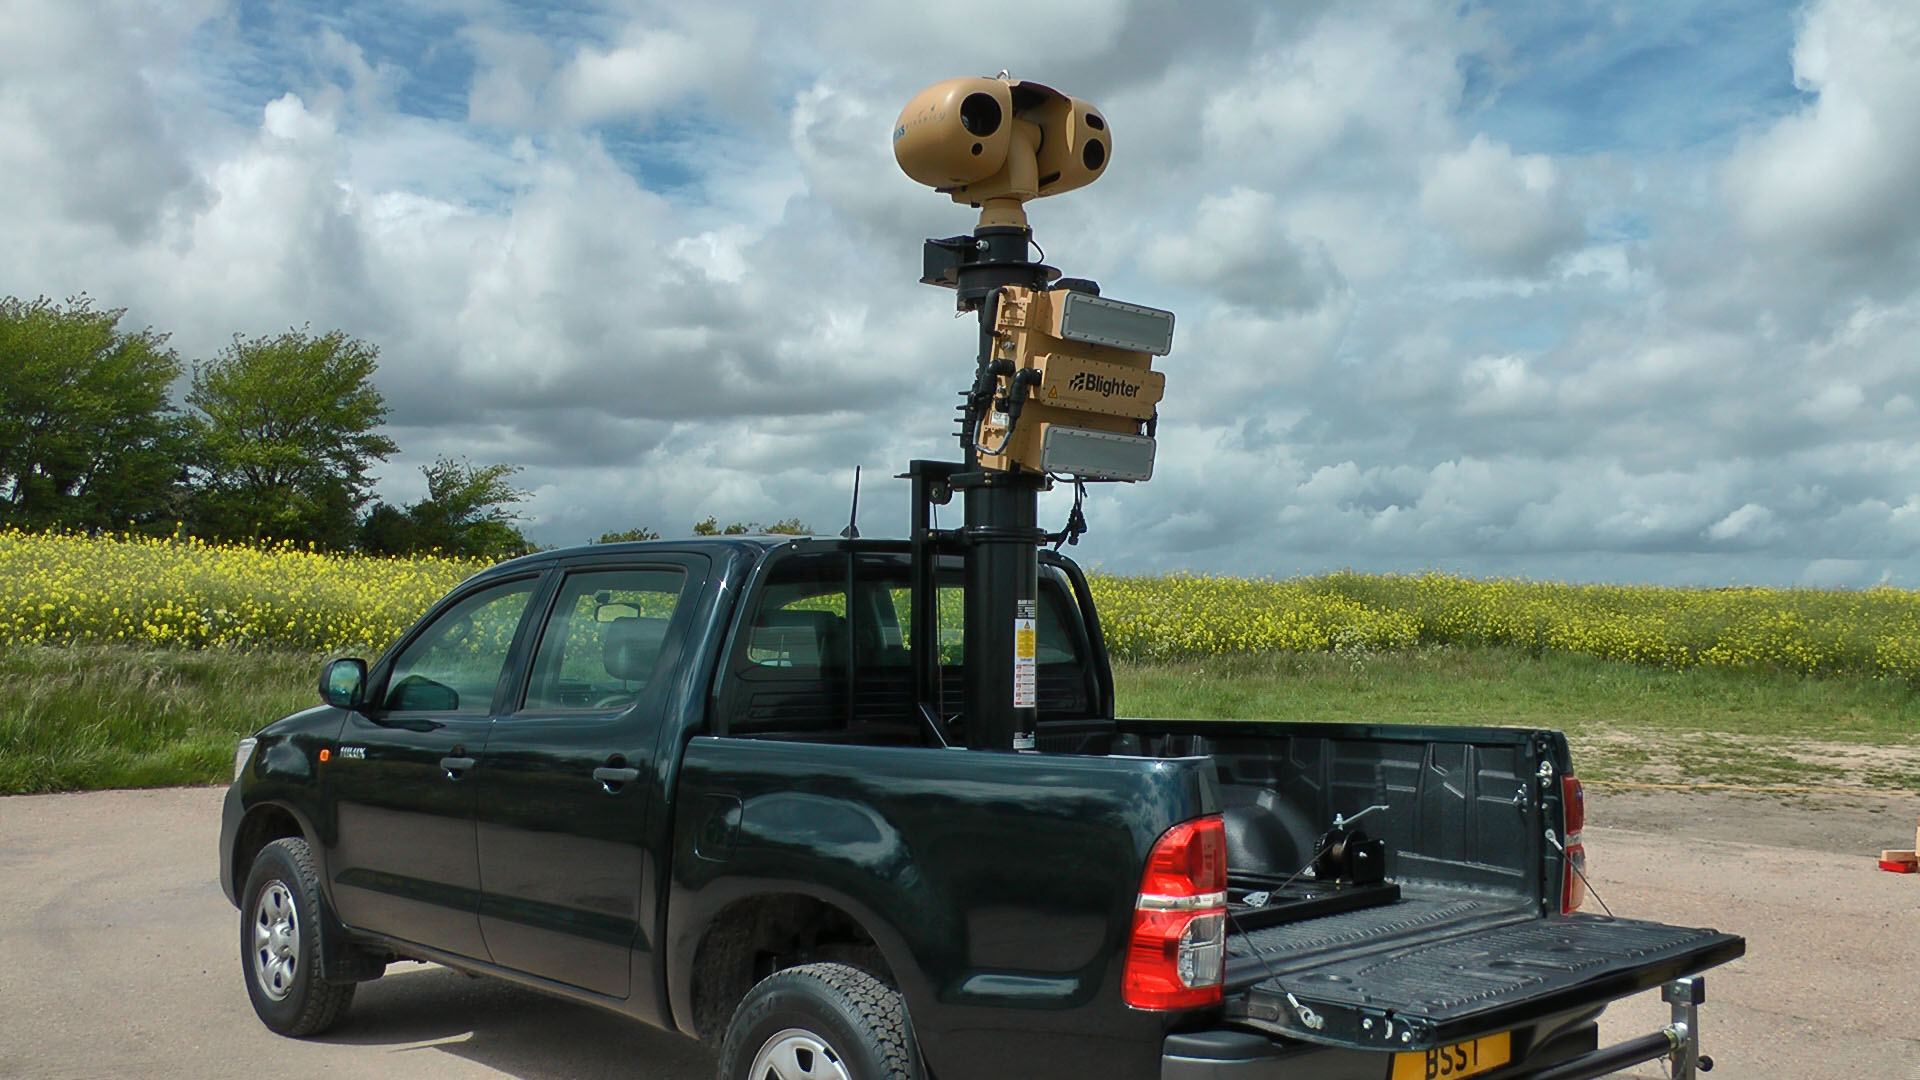 Blighter Unveils Rapid Deployment Radar Camera System For